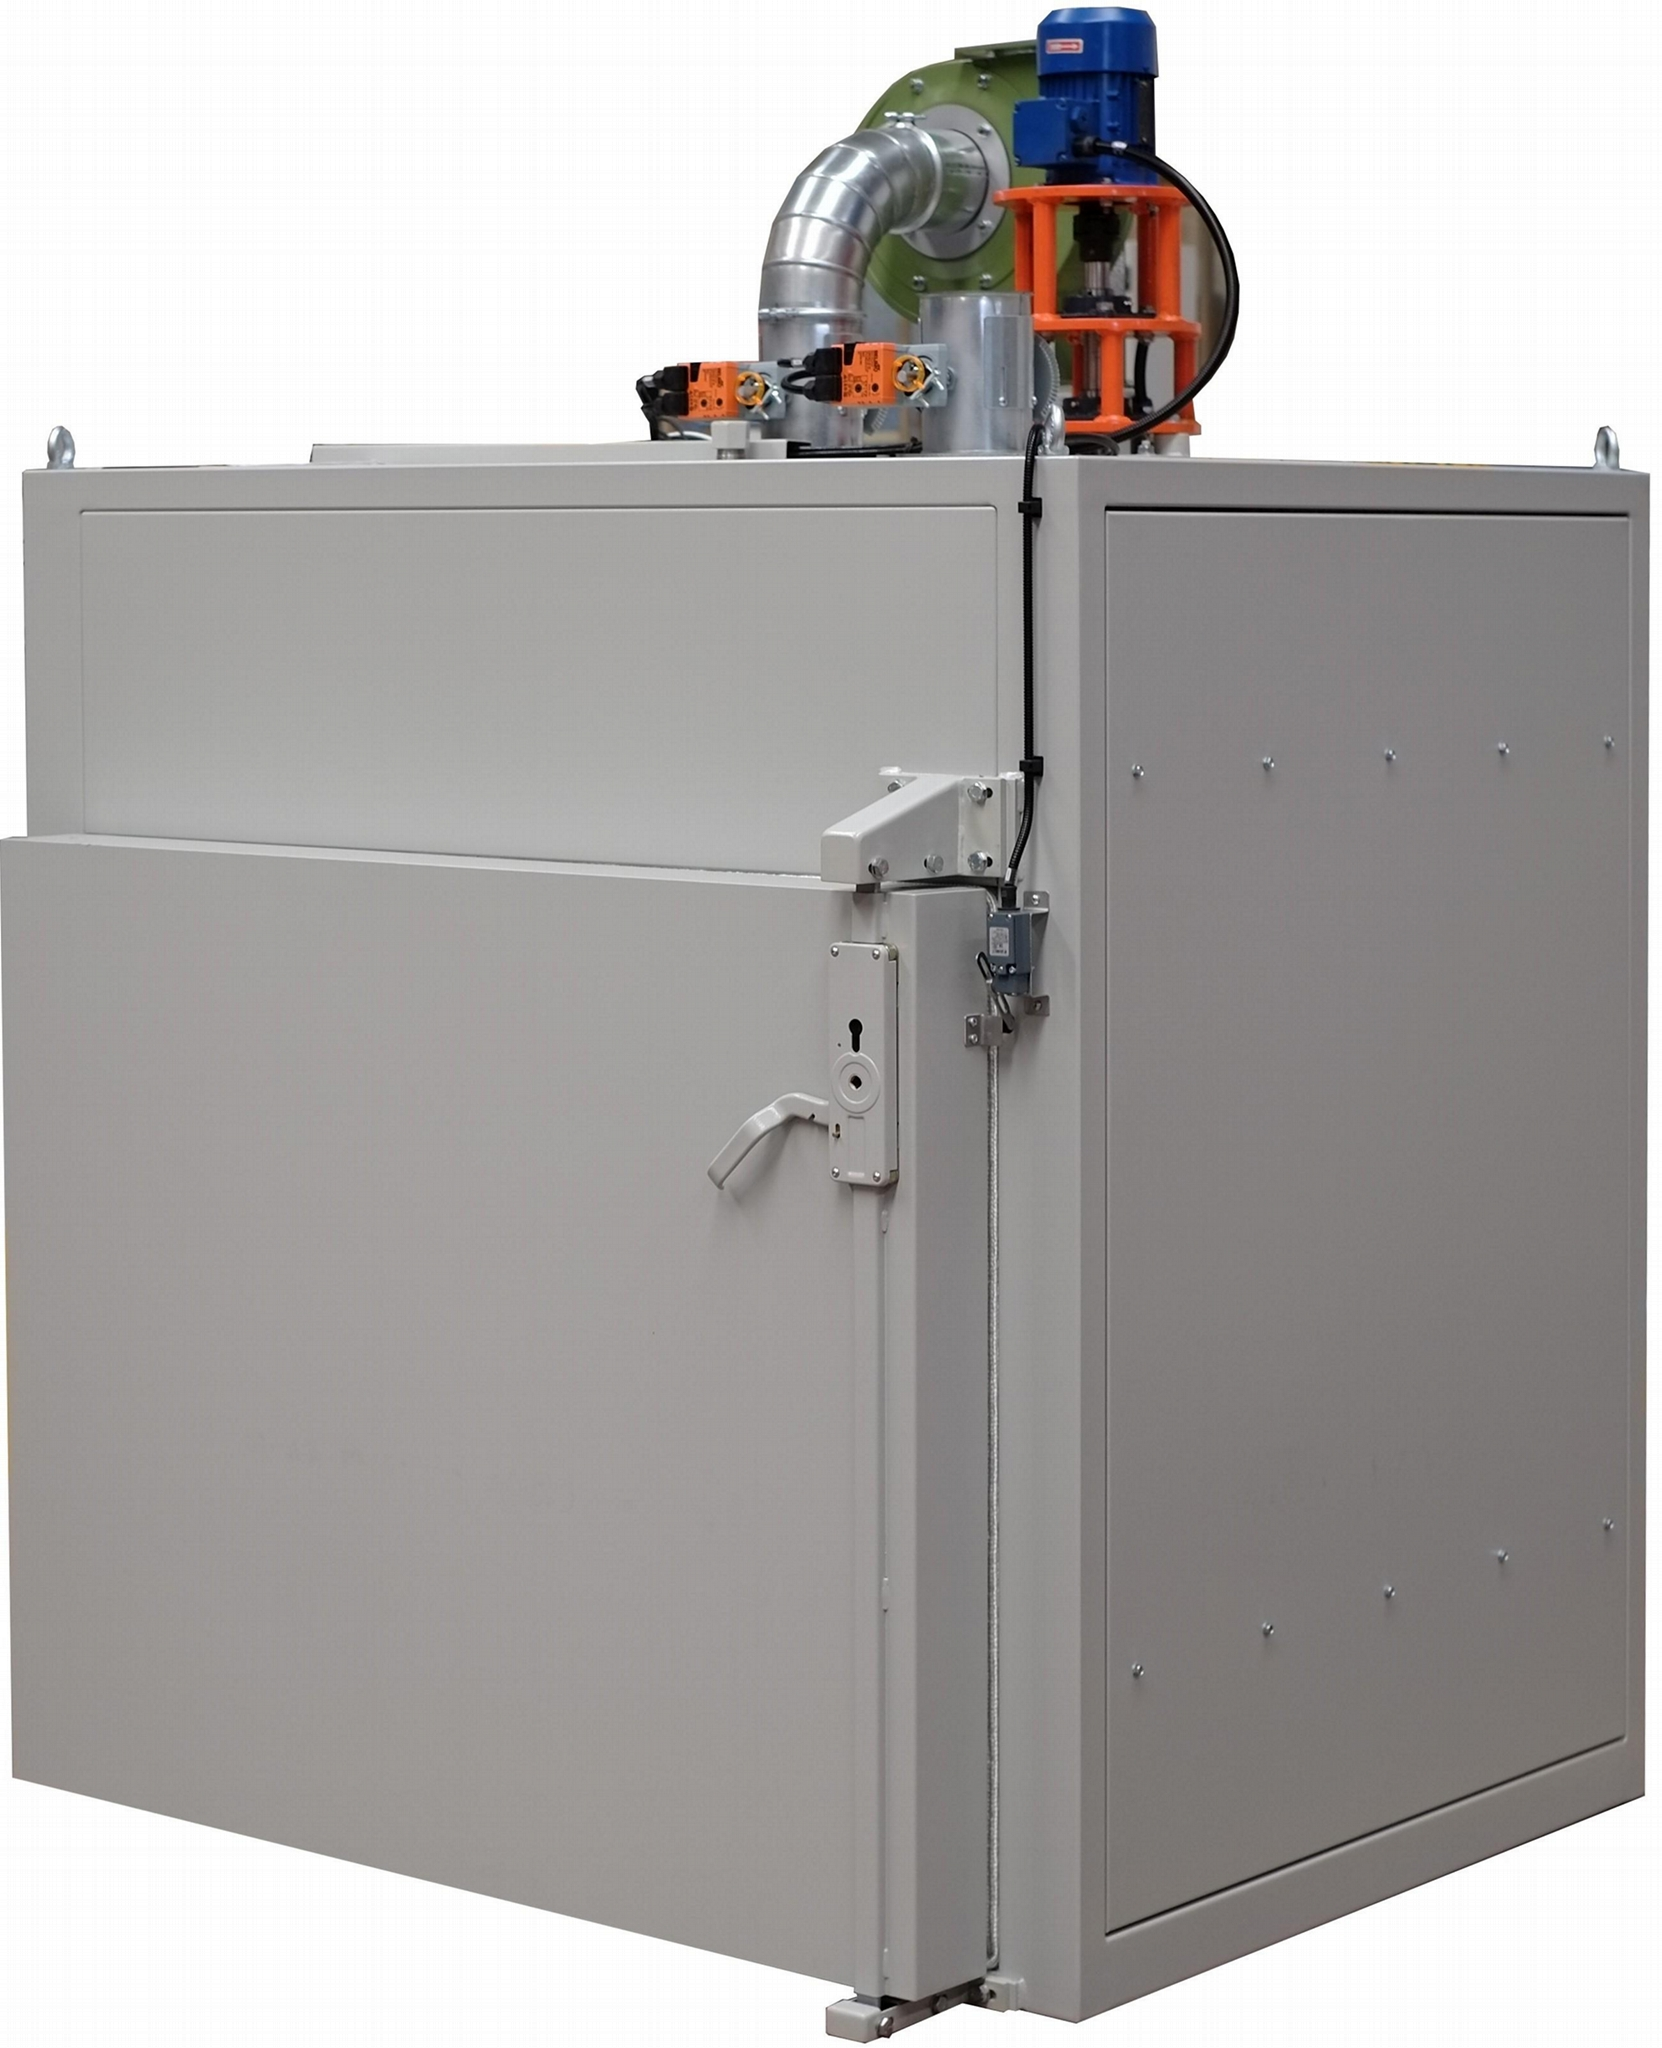 Batch Ovens for Electric Motors - Industrial Batch Ovens by Idrocalor 4